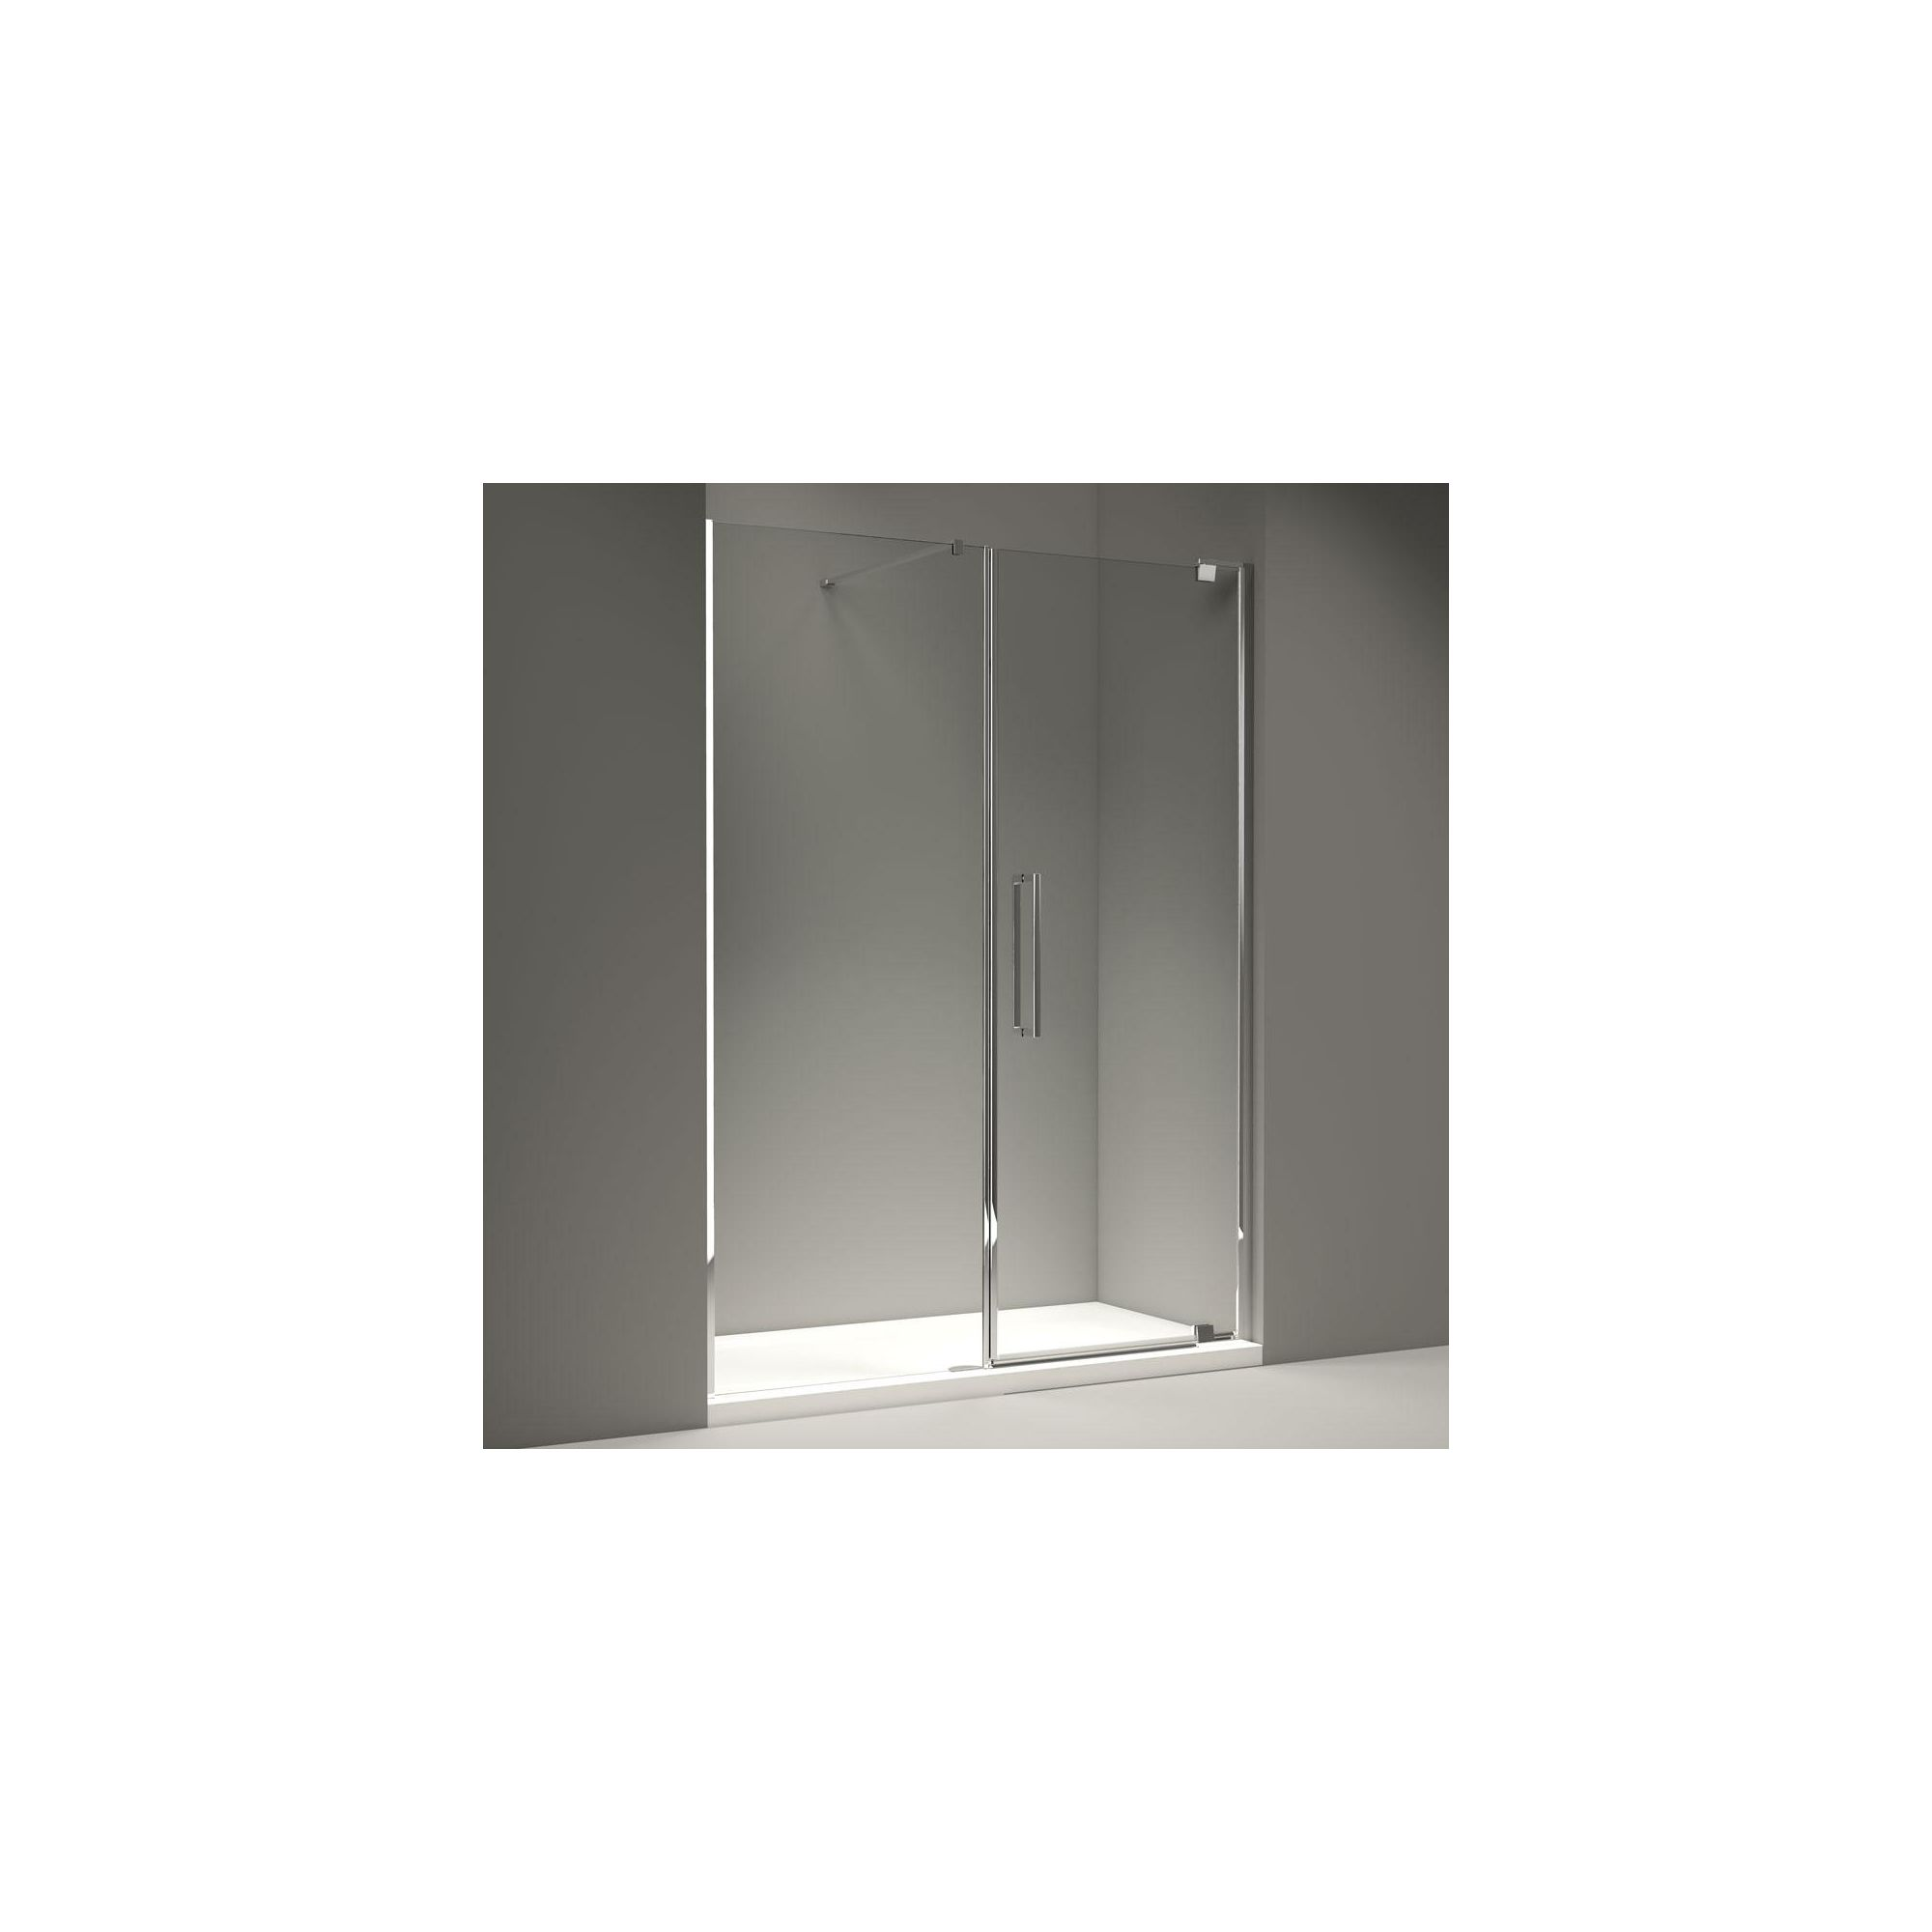 Merlyn Series 10 Inline Pivot Shower Door, 1800mm Wide, 10mm Clear Glass at Tesco Direct